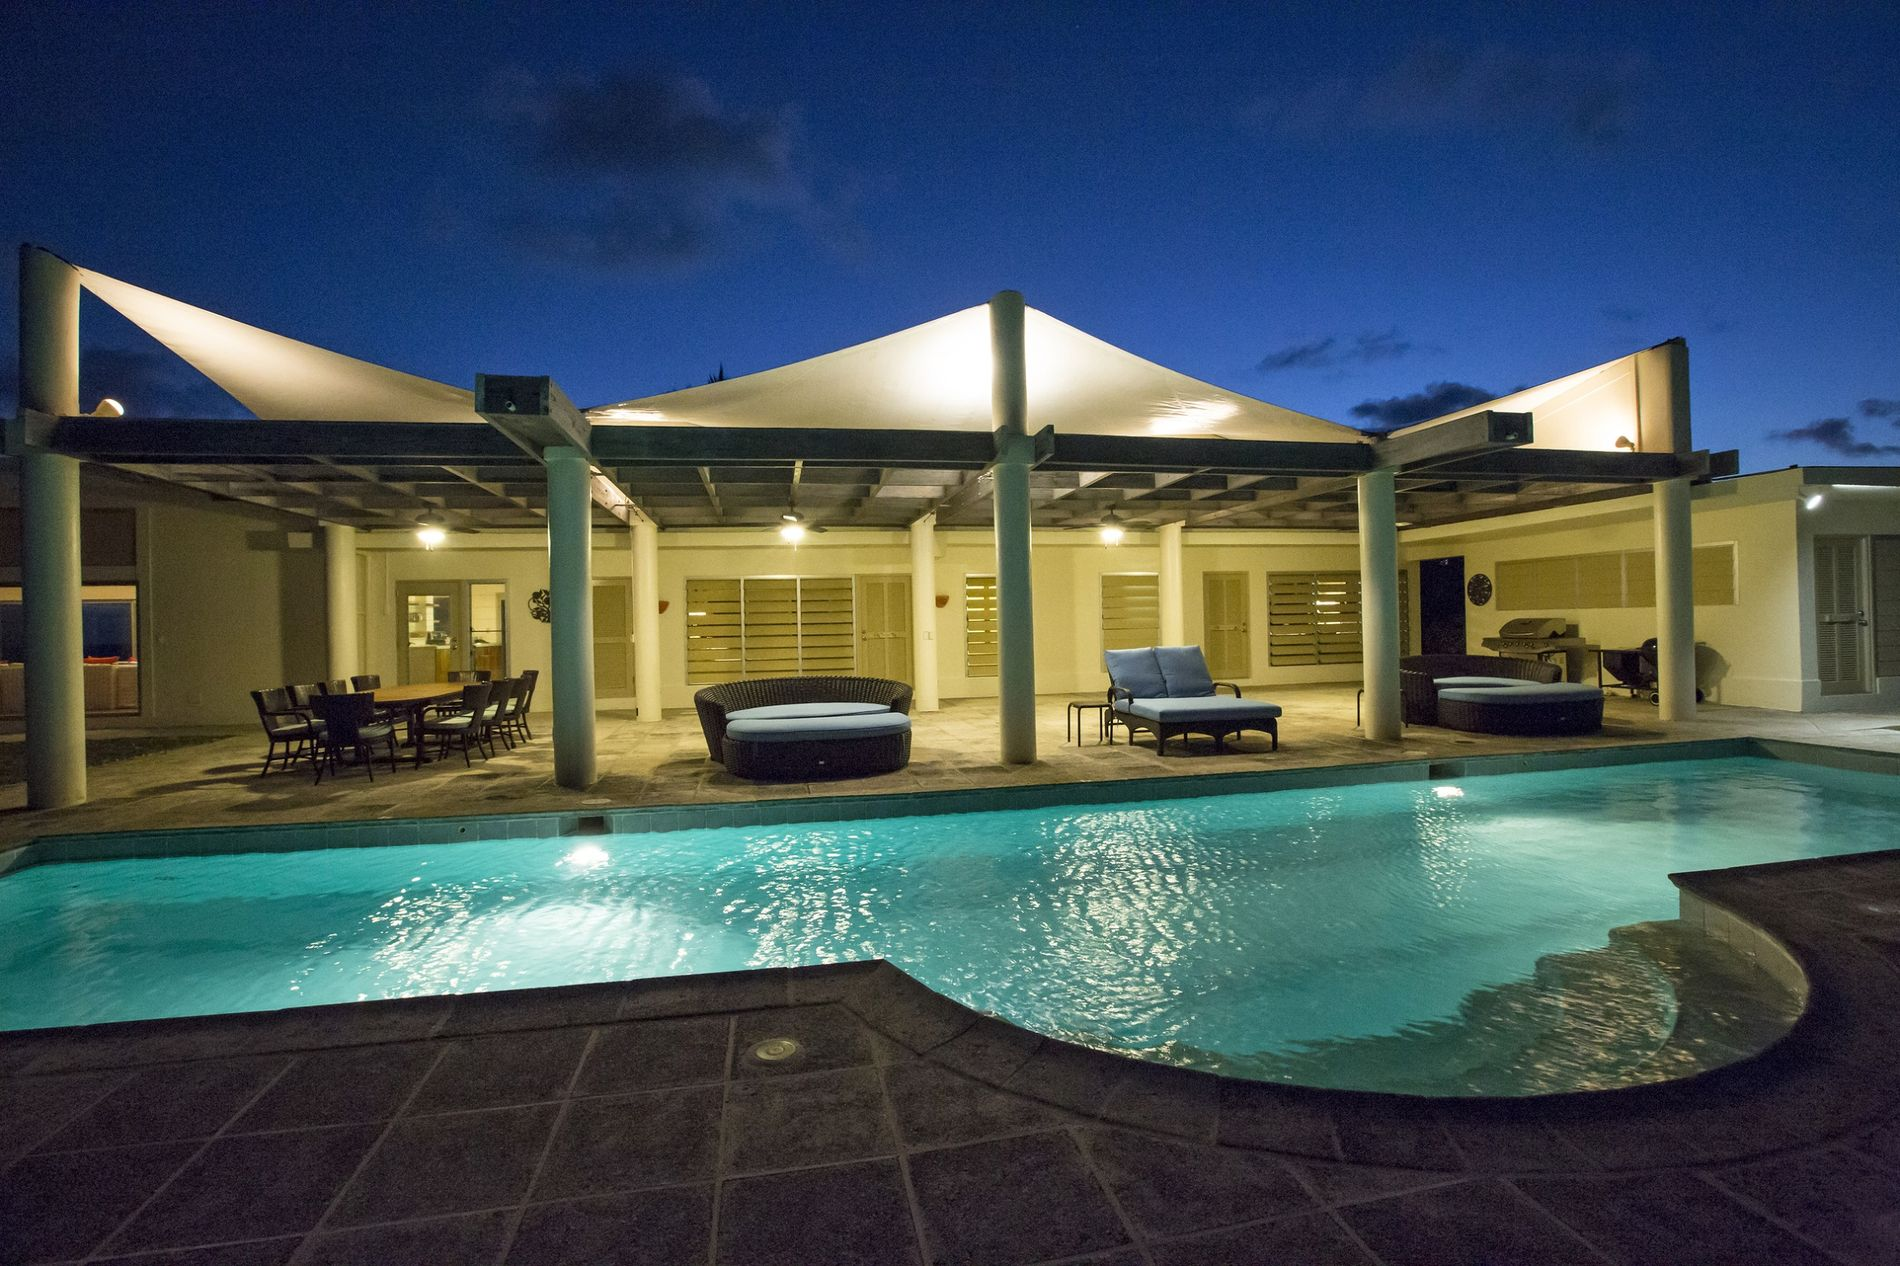 Beach House Outdoor Pool